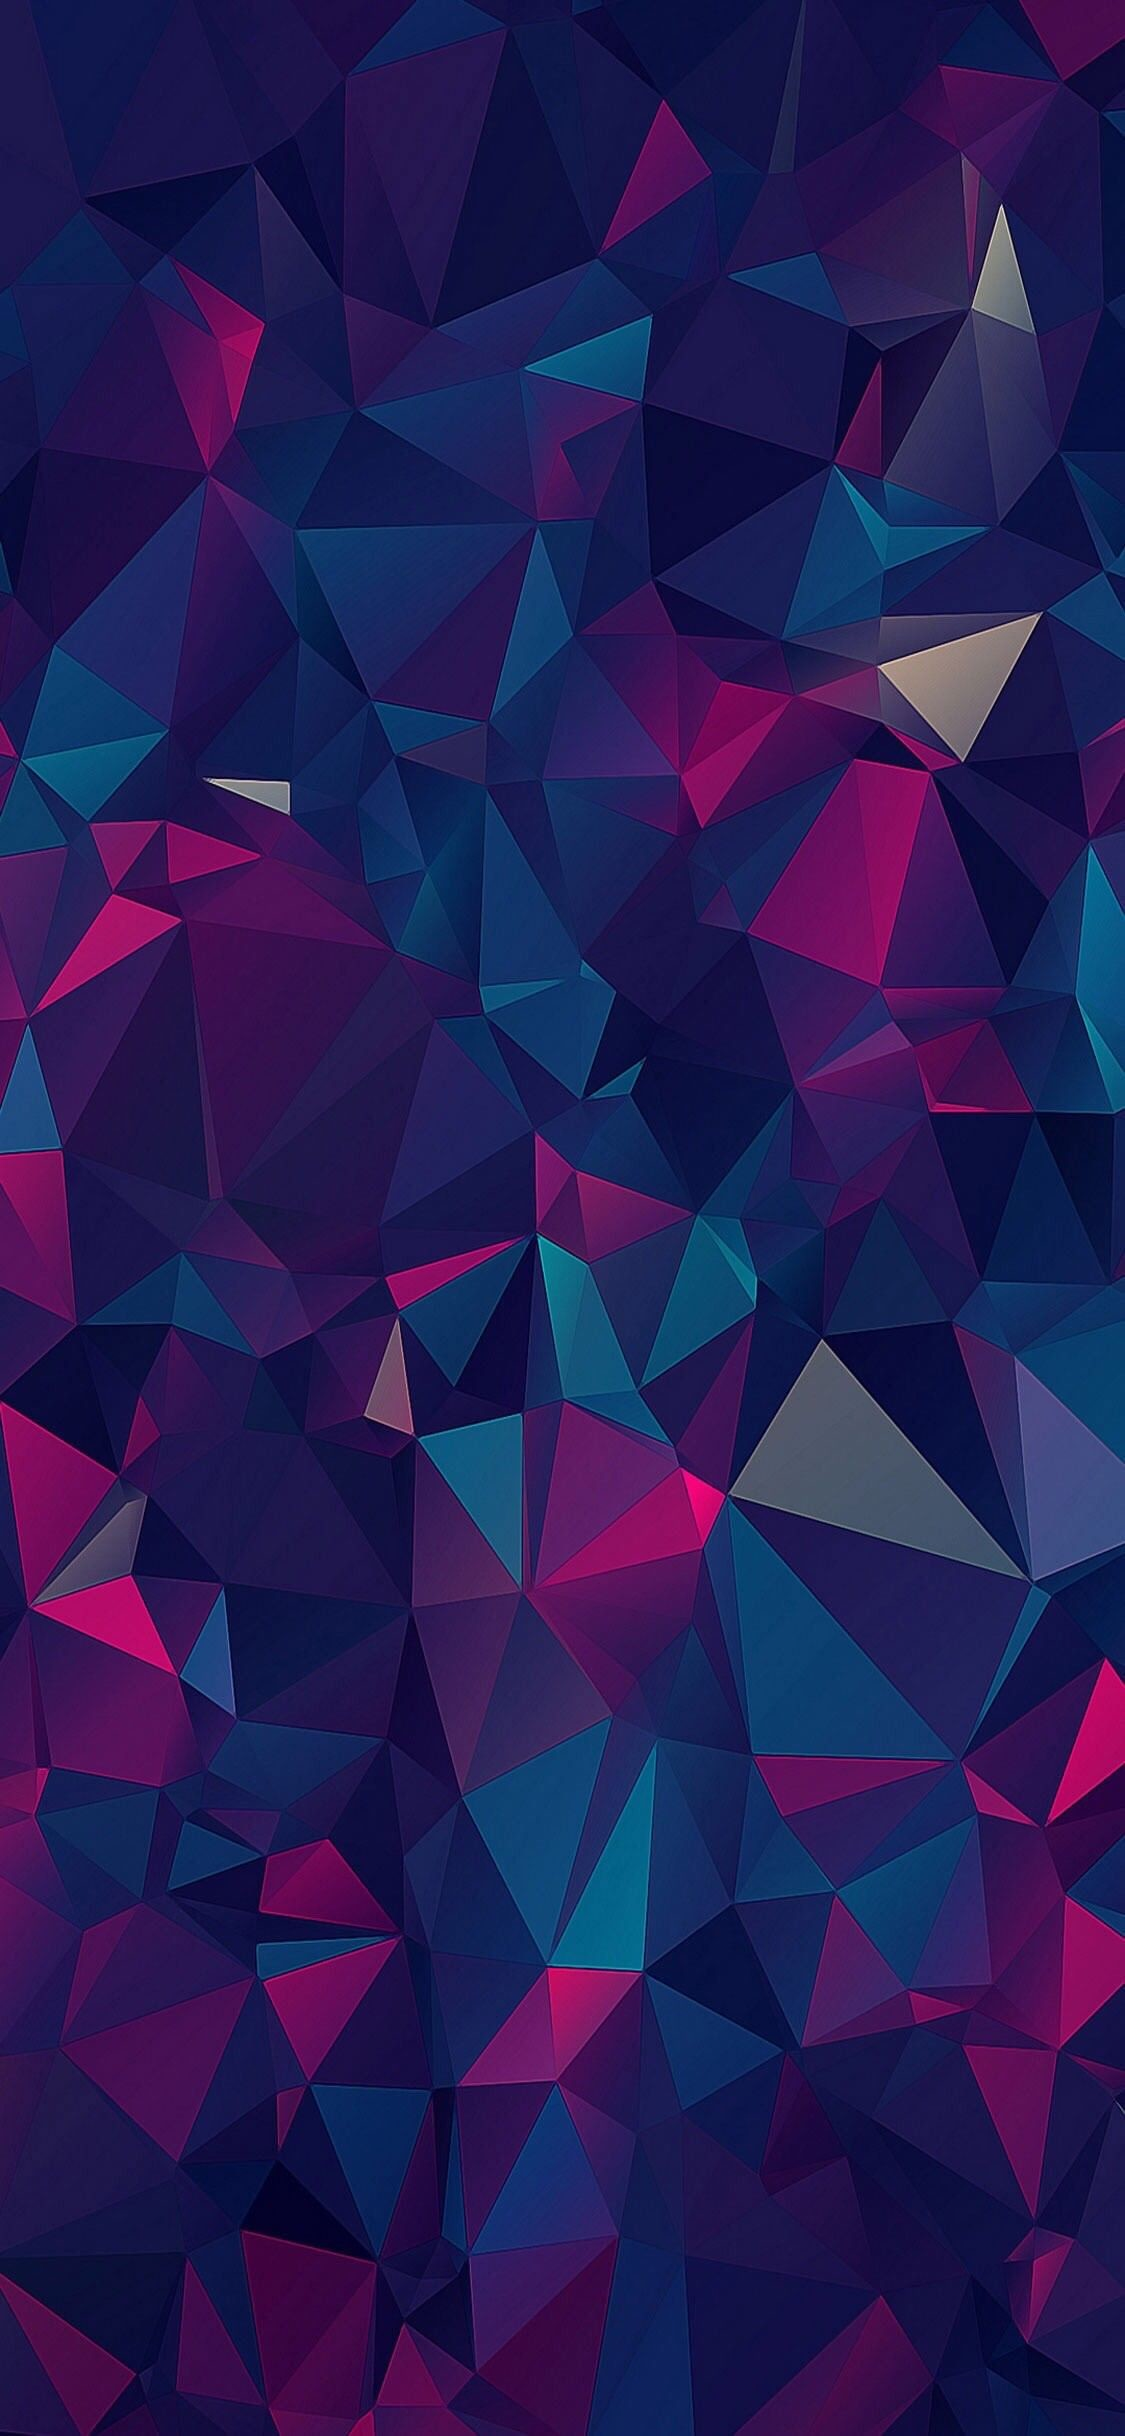 Res: 1125x2436, iOS 11, iPhone X, purple, blue, clean, simple, abstract,